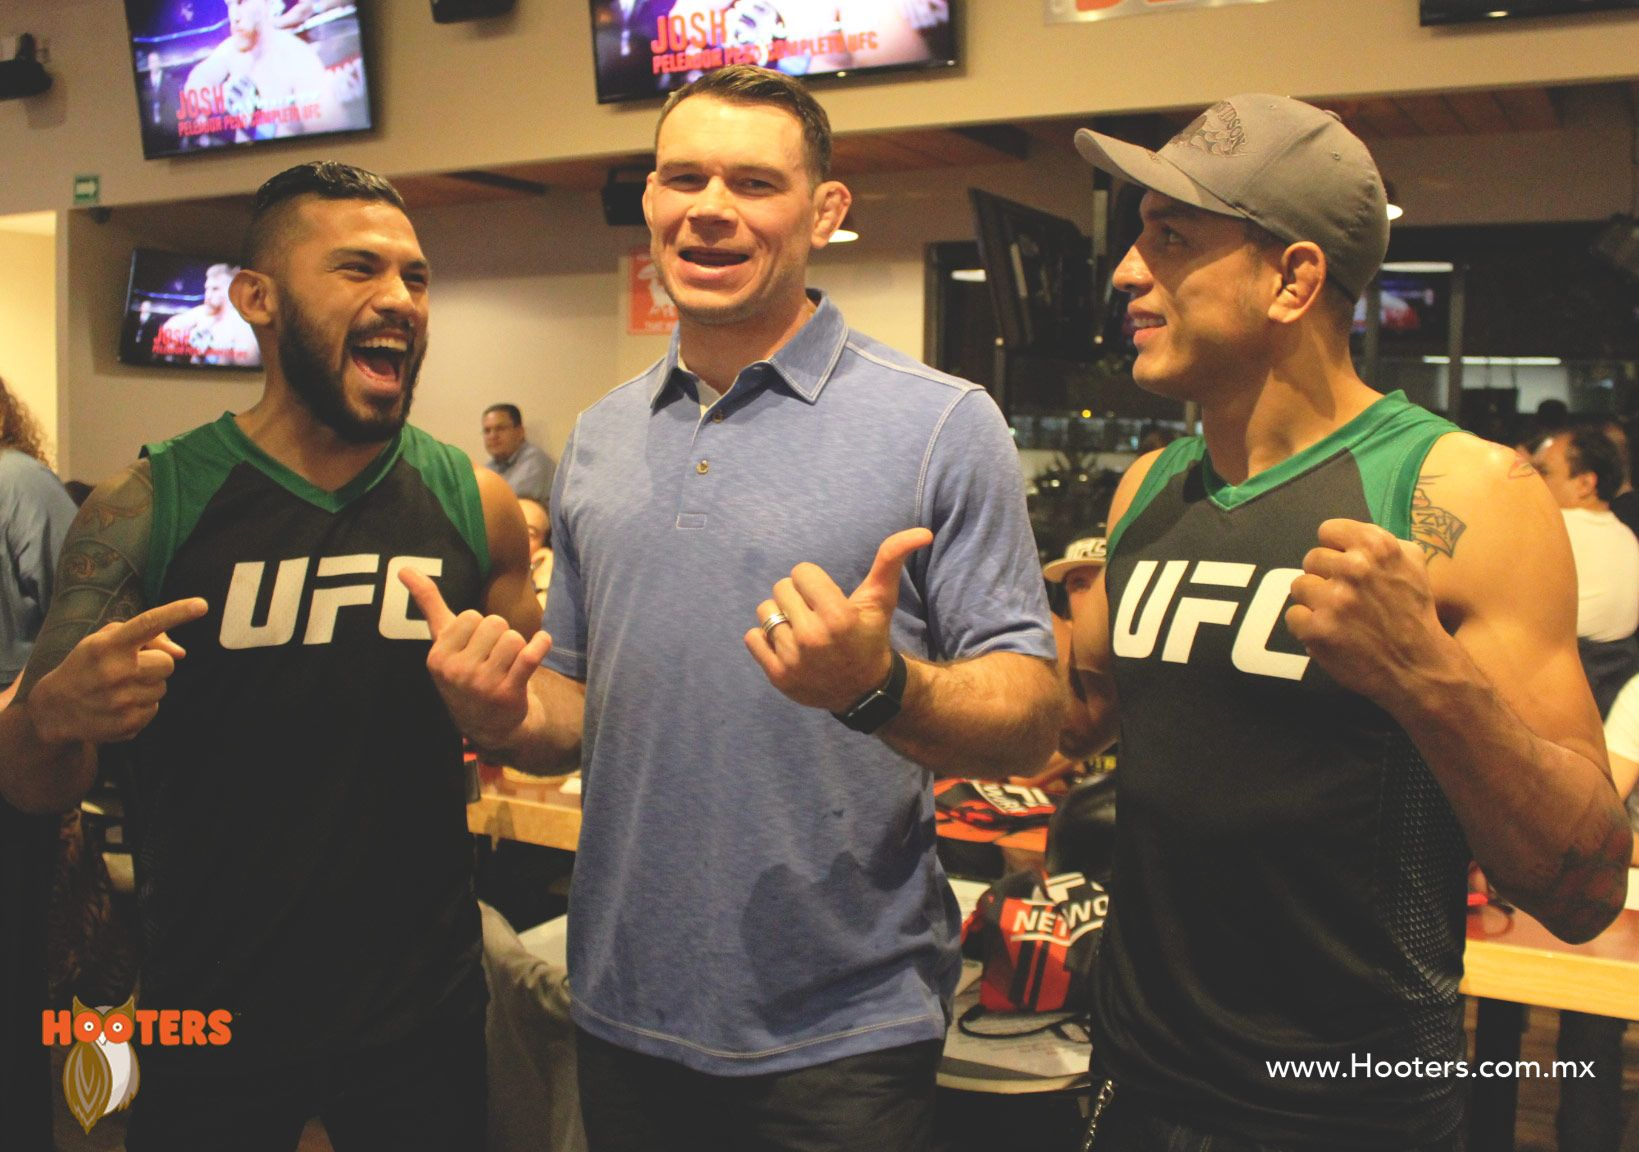 Pin By Hooters Mxico On Ufc Meet Greet Chuck Liddel Y Forrest